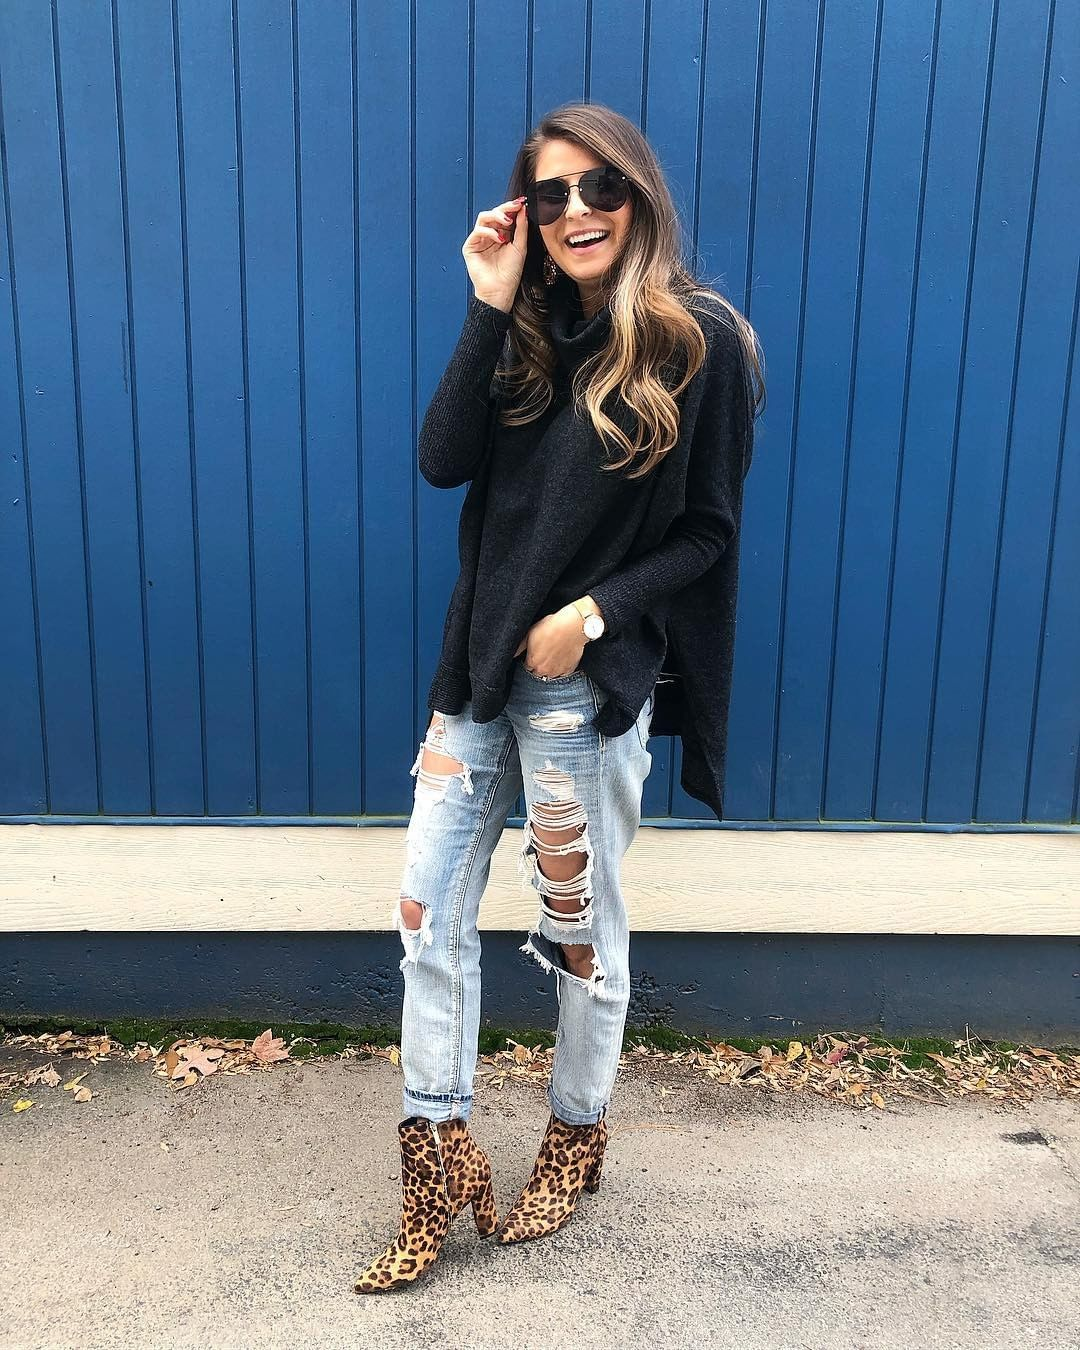 @simply_darlings' pop of leopard print booties